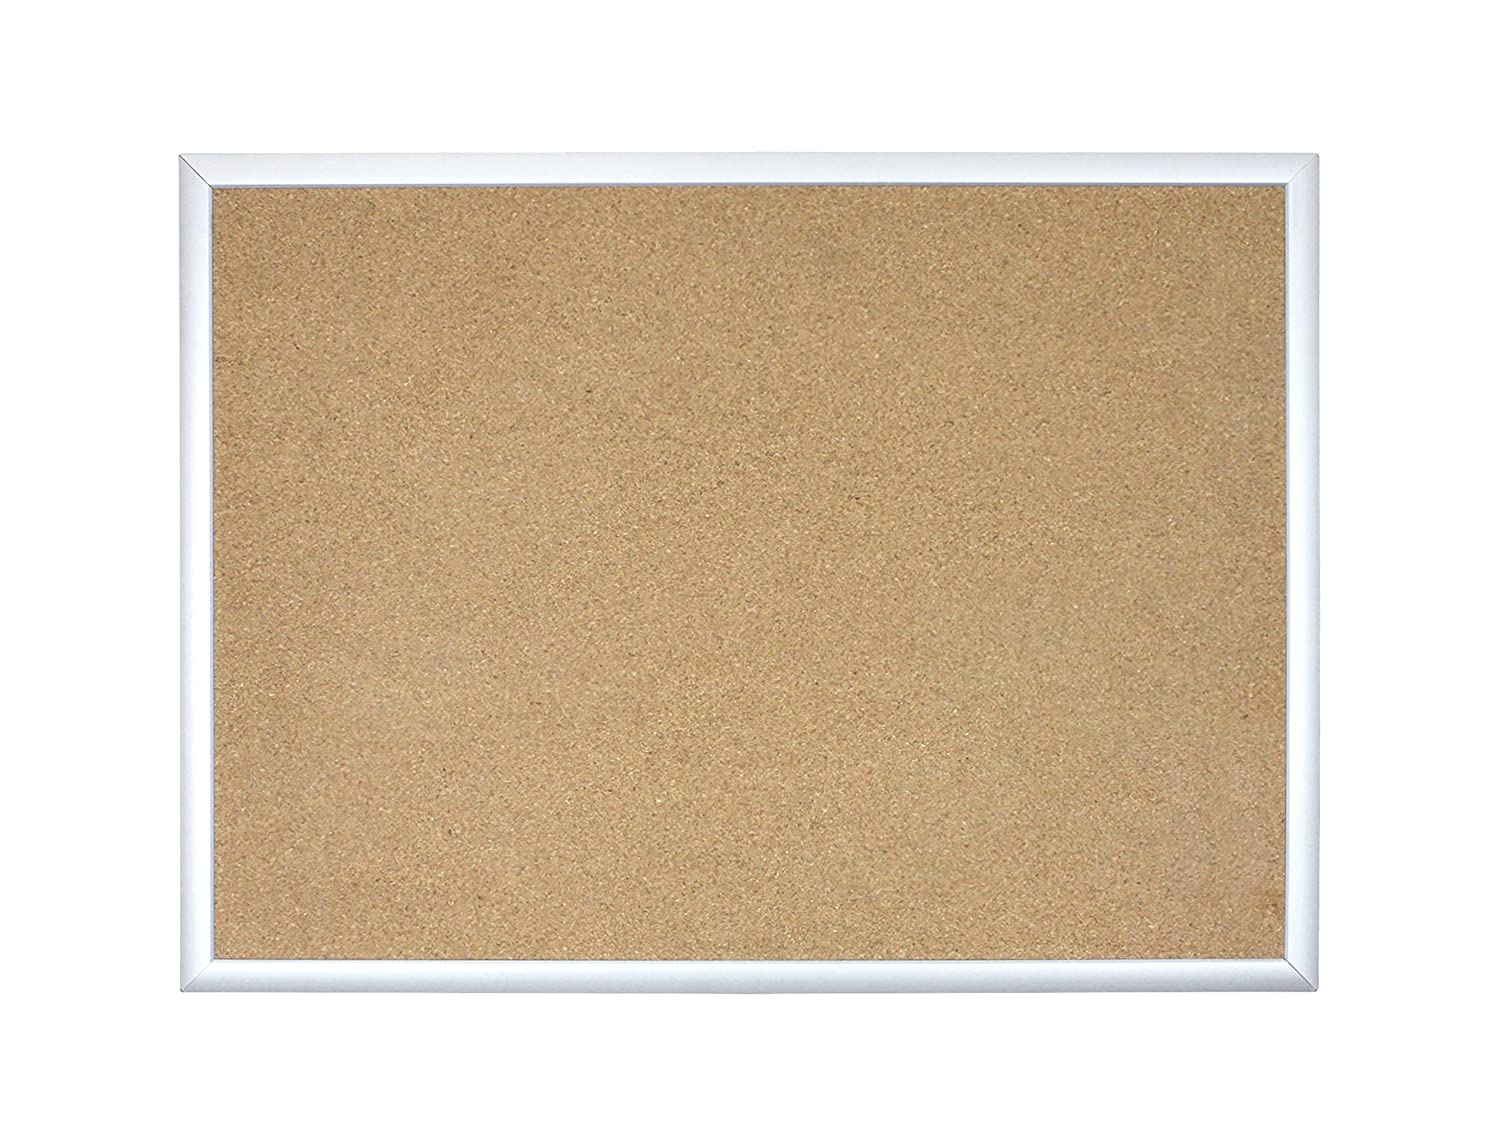 U Brands Basics Cork Bulletin Board, 23 x 17 Inches, Silver Aluminum Frame